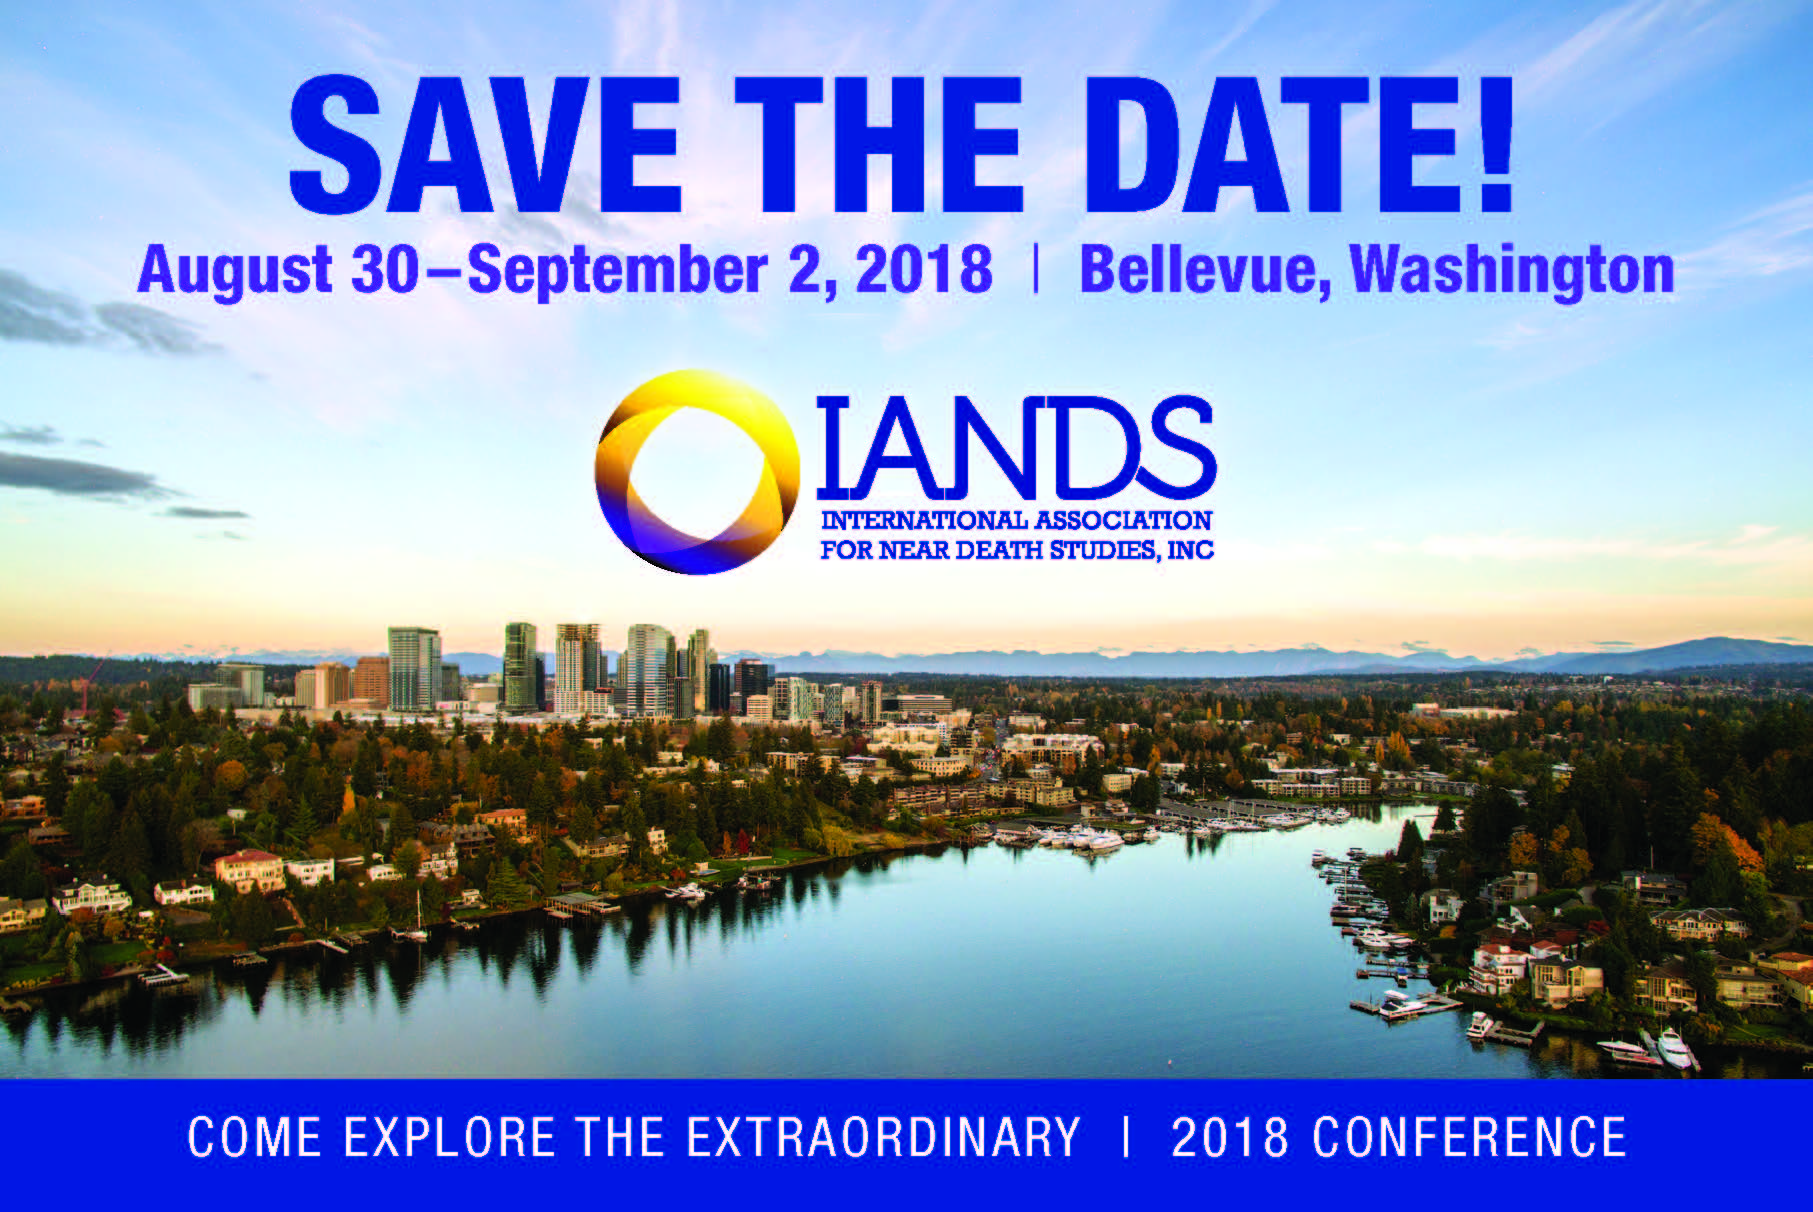 IANDS Save the Date 2018